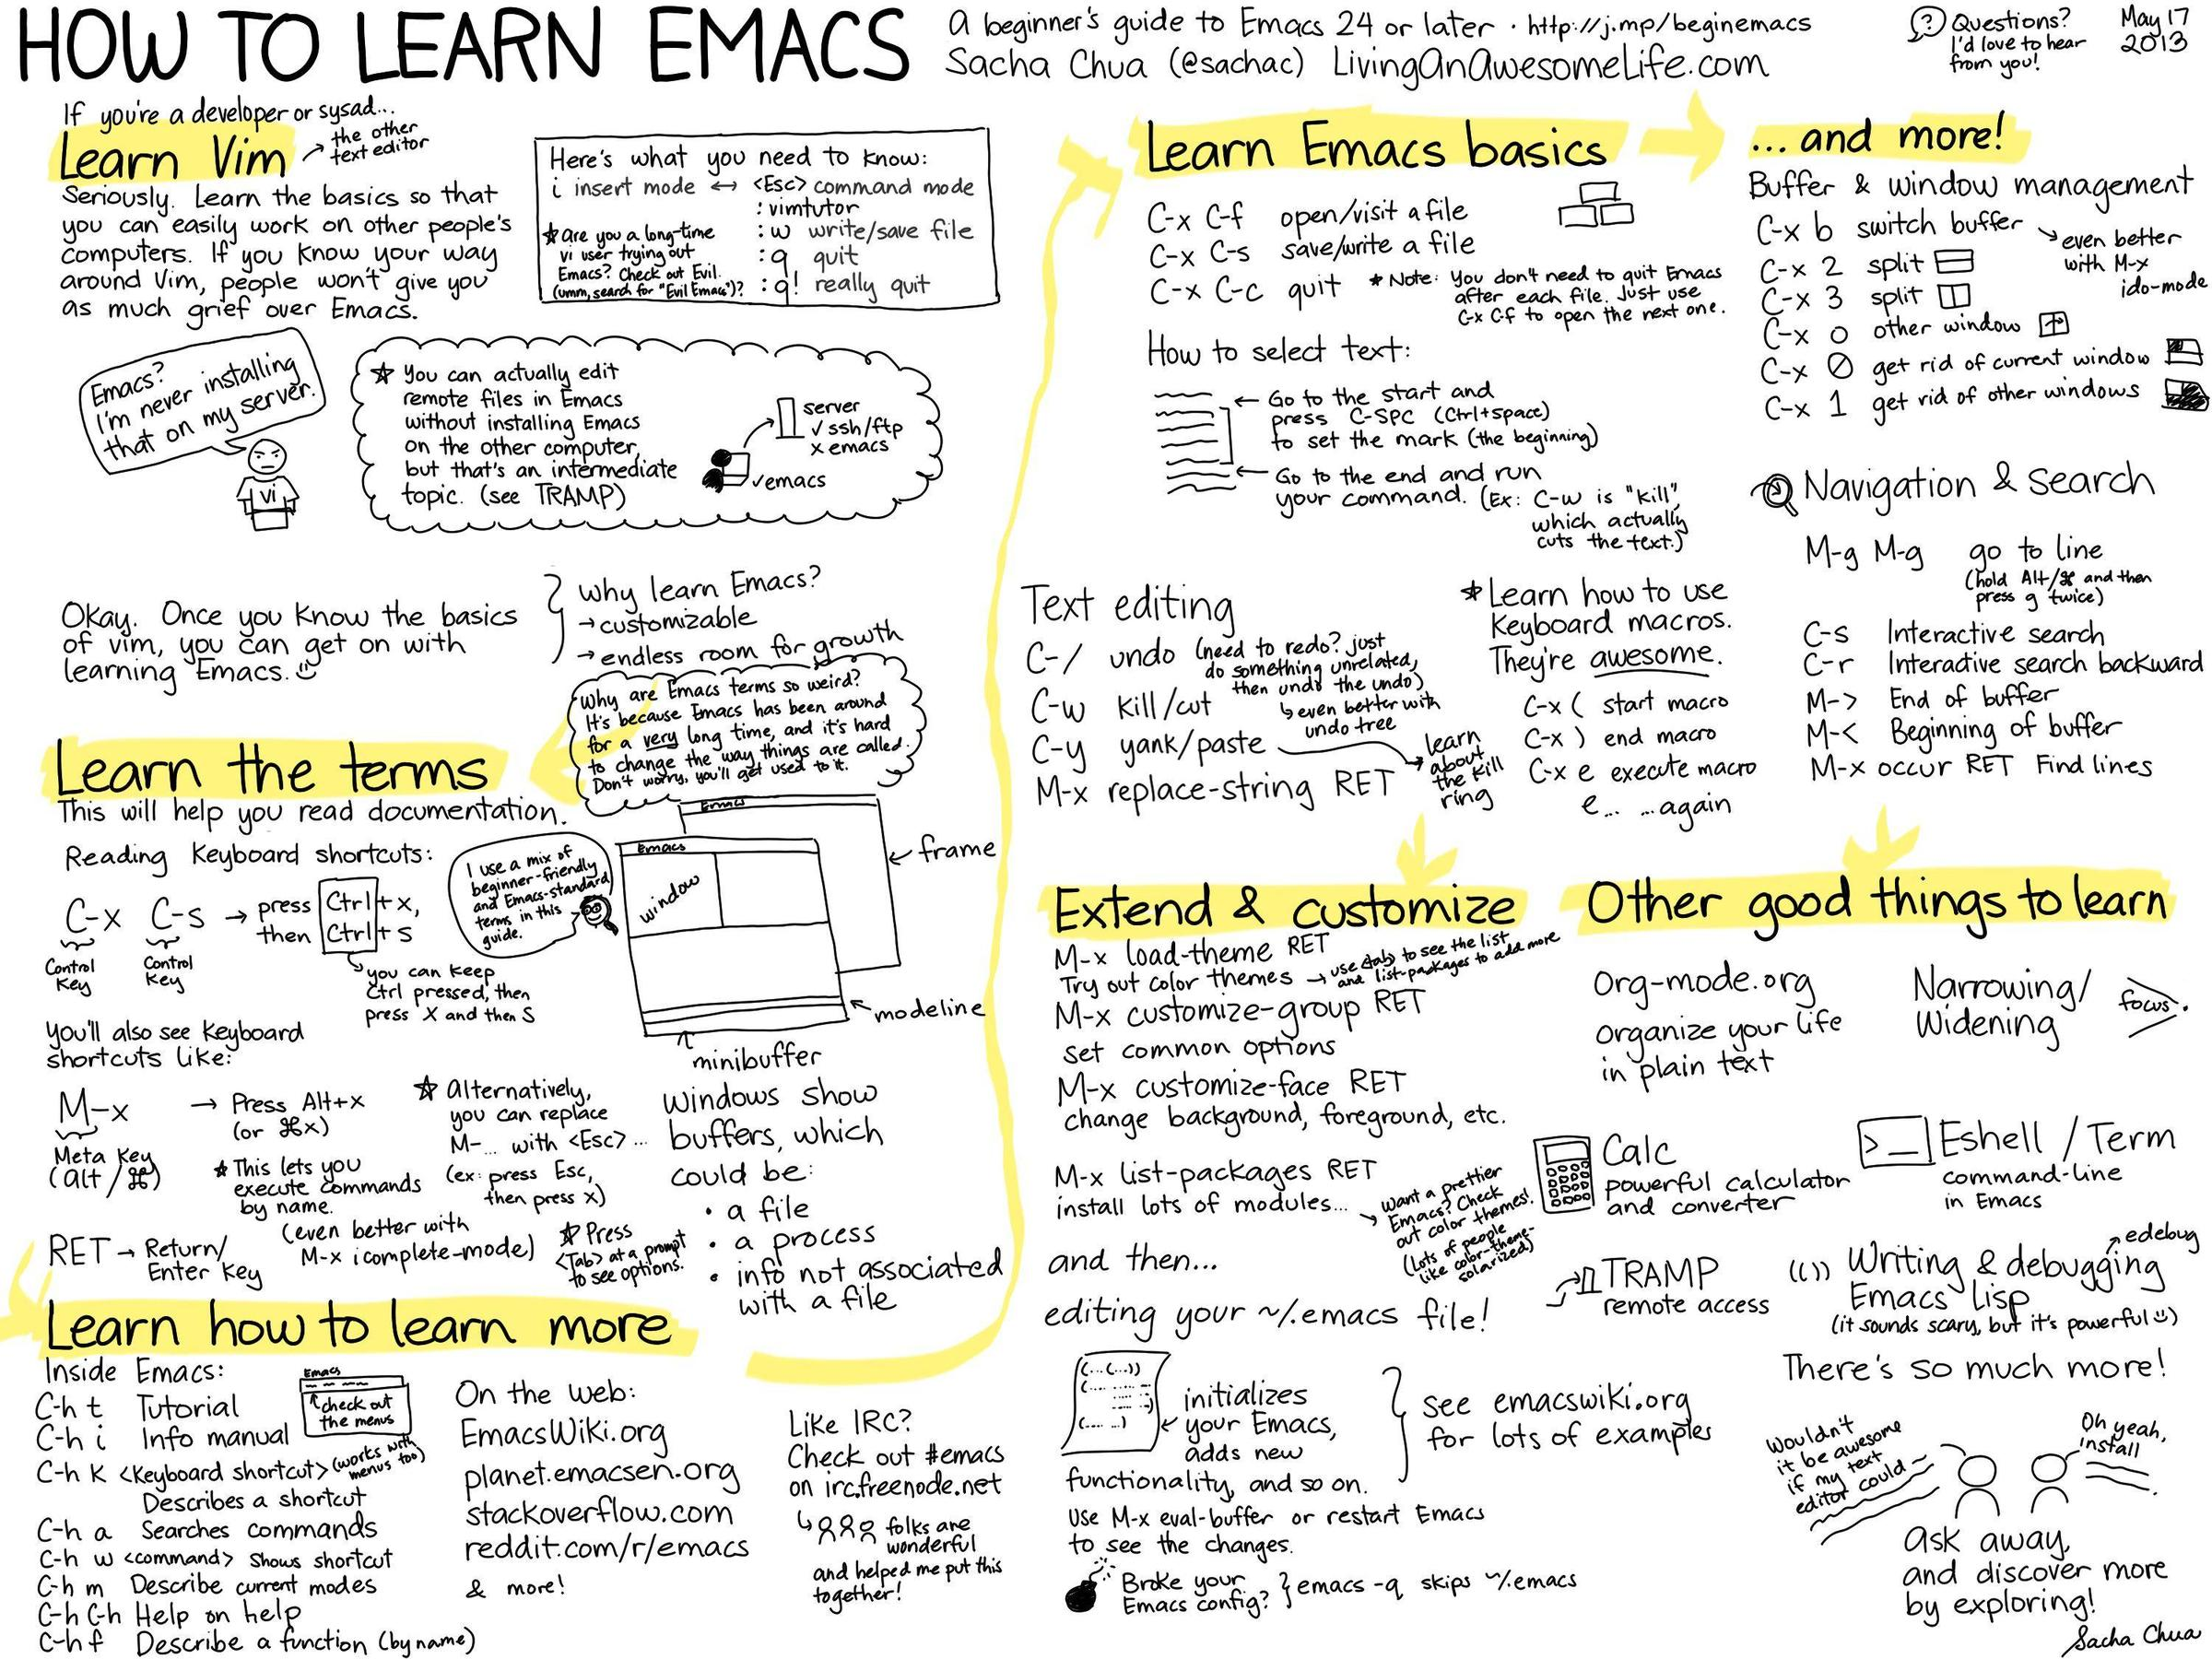 Commonly Useful Emacs Commands And Shortcut Keys